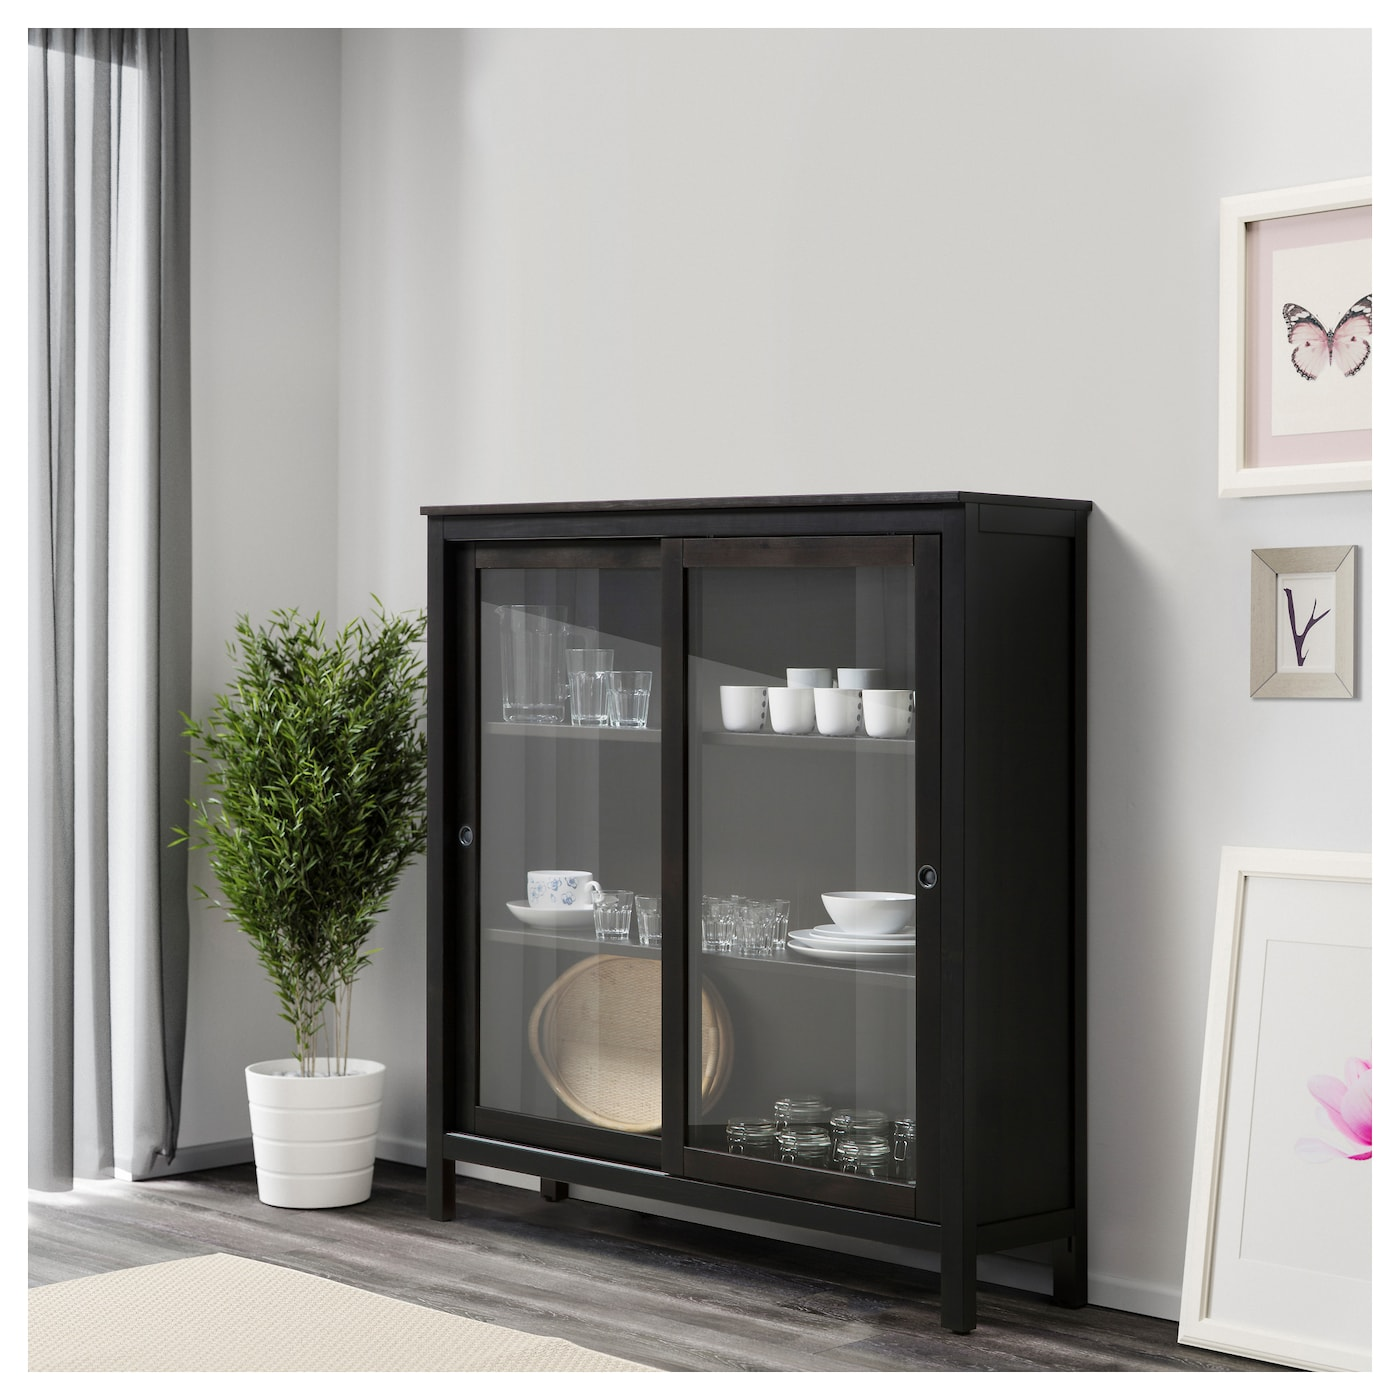 Hemnes glass door cabinet black brown 120x130 cm ikea Glass cabinet doors